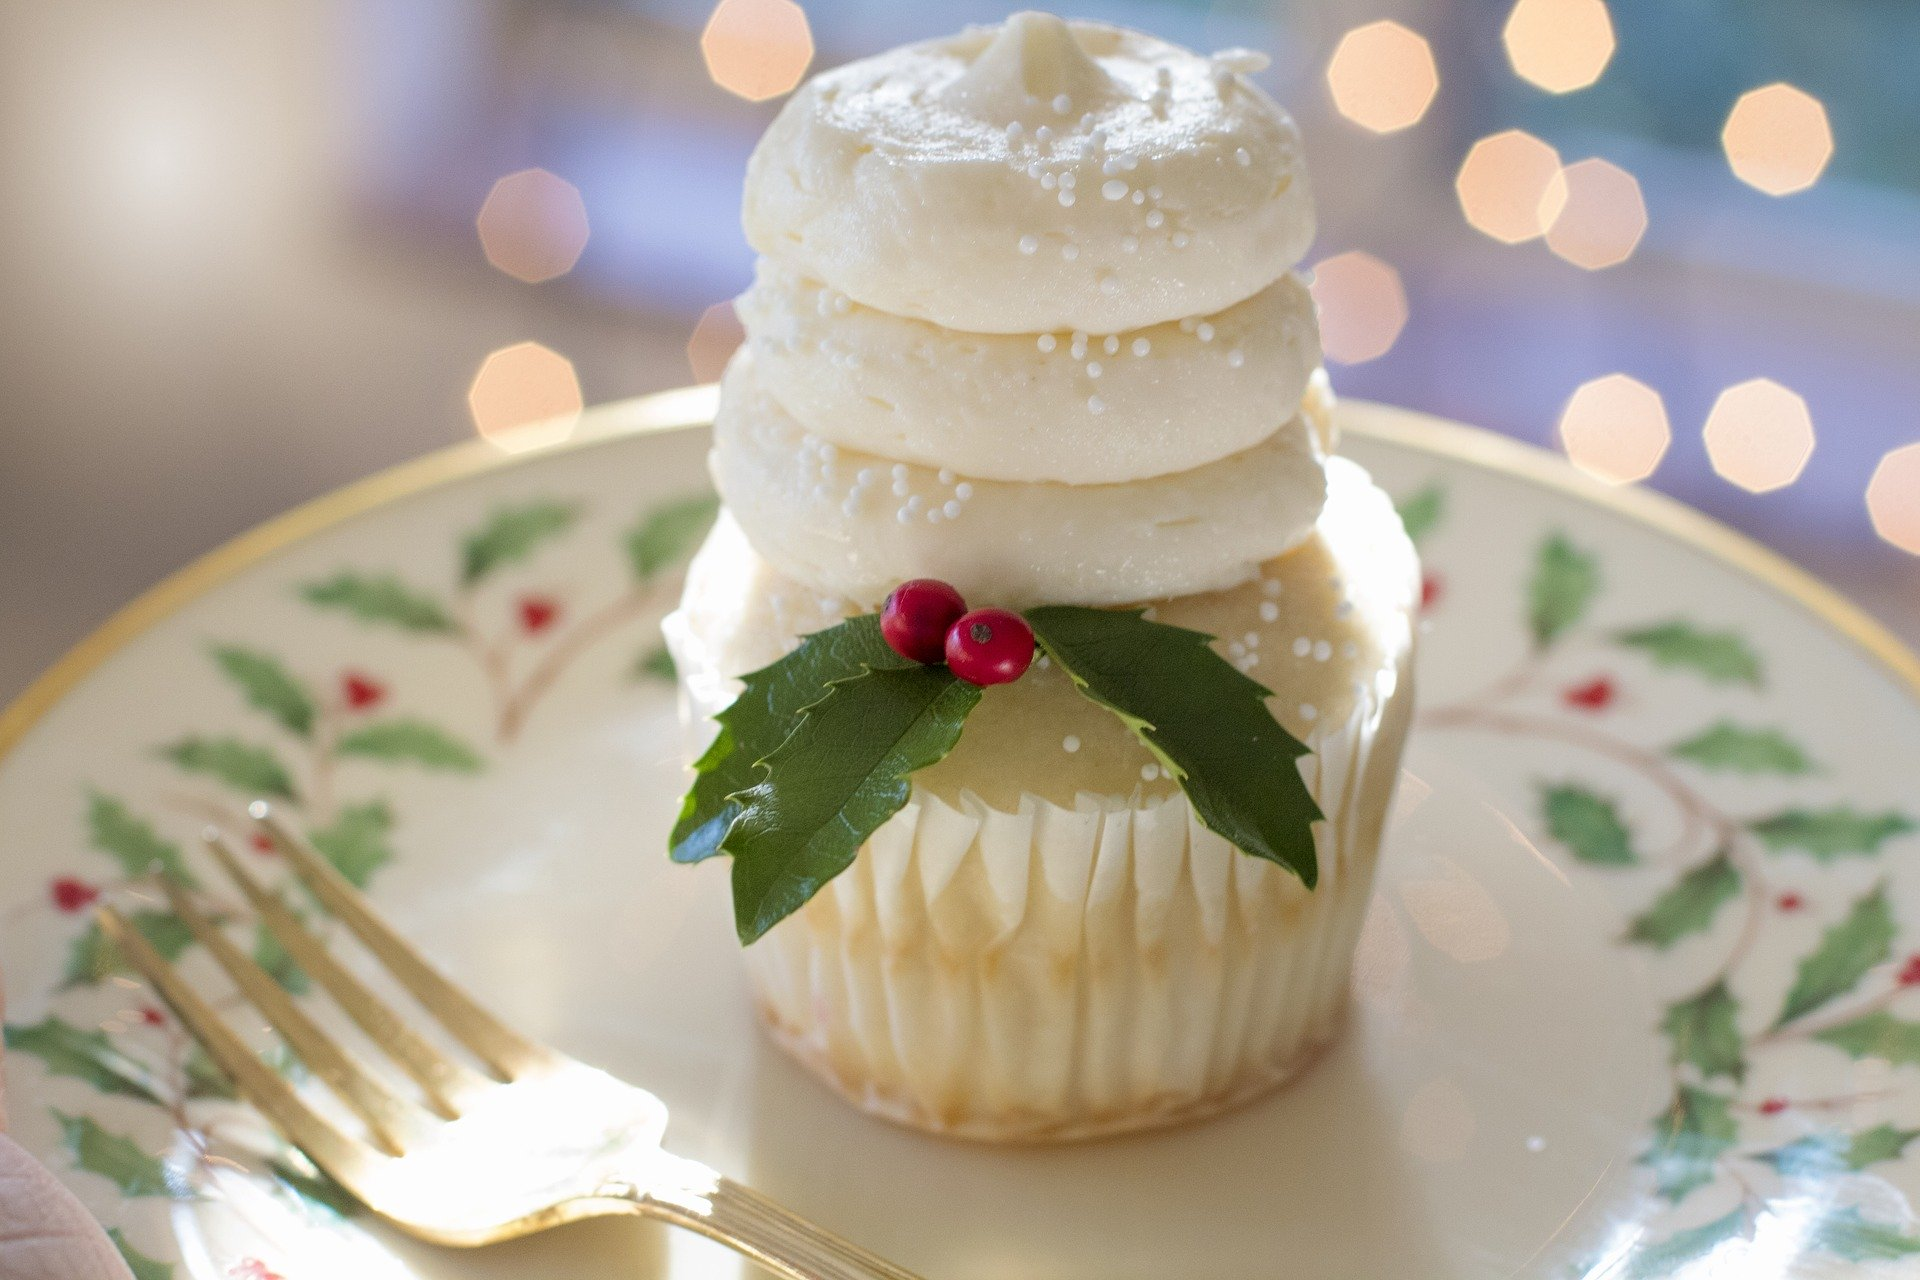 A cupcake sitting on a plate. Both are decorated for Christmas.